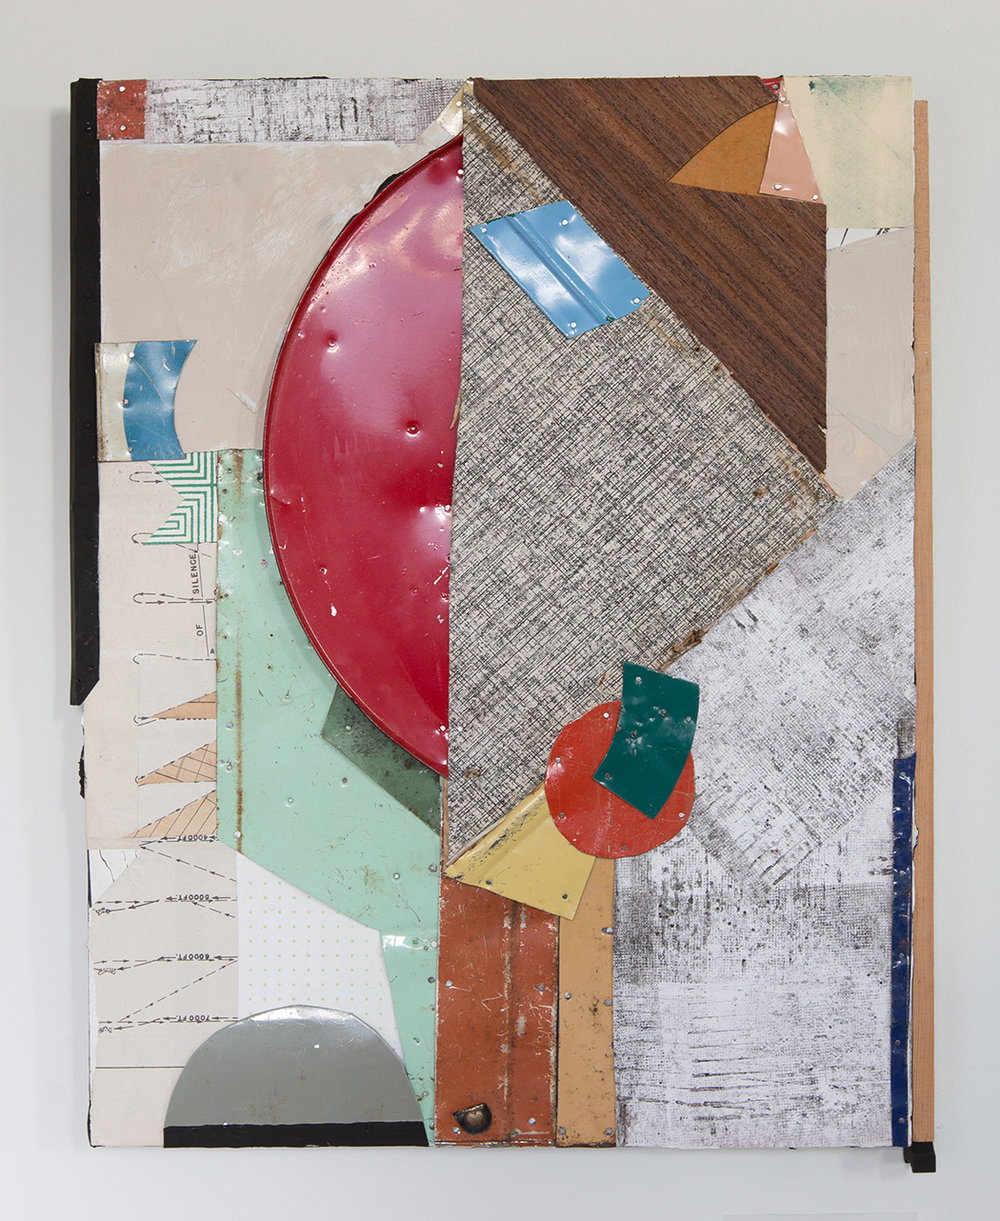 """Static White Noise,  2017, Acrylic, Flashe Vinyl, Collage, Ink, Found Wood, Tin on Panel, 18 1/2"""" H x 14 3/4' W x 1 3/4"""" D"""